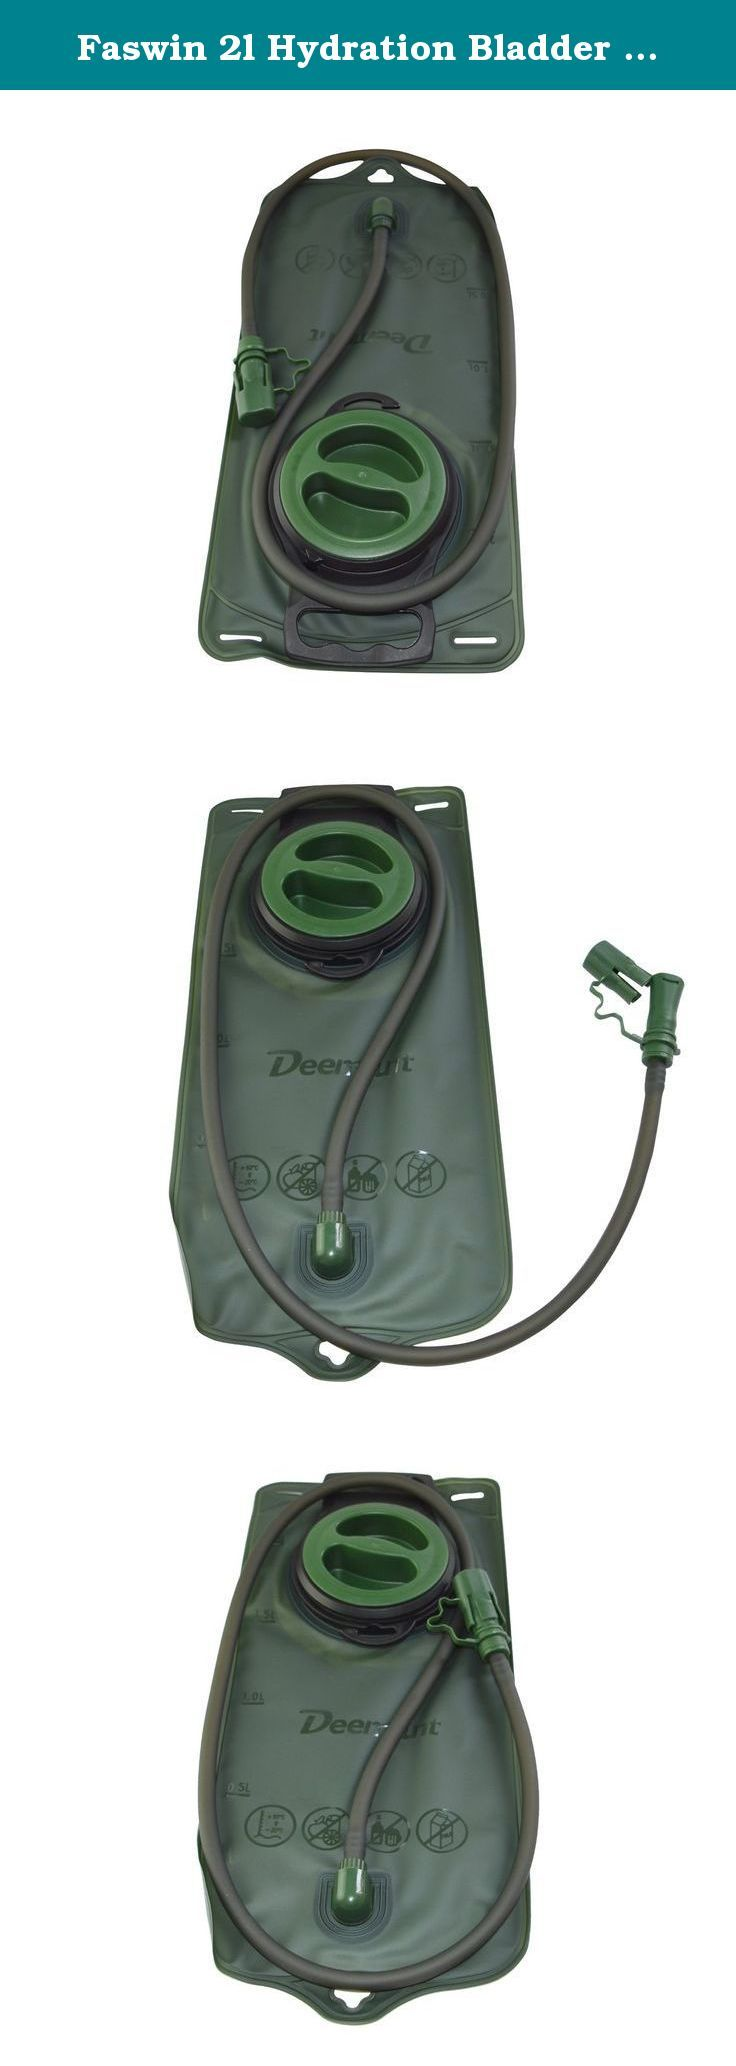 Faswin 2l Hydration Bladder Olive Drab, Water Reservoir for Running, Hiking, Climbing, Military Backpack, Marching, Outdoor Event, Body Armor Hydro System. Product Features: -Food grade TPU material, Taste-free and BPA-free, with SGS and FDA certification. - Fits Most Hydration Backpacks-Molle & Tactical Vests, Use As A Replacement Or For Adding Hydration To A Compatible Pack. - Superior Quality - A Favorite With Military, Law Enforcement, Hunters, Hikers And Outdoor Enthusiasts. - Good...